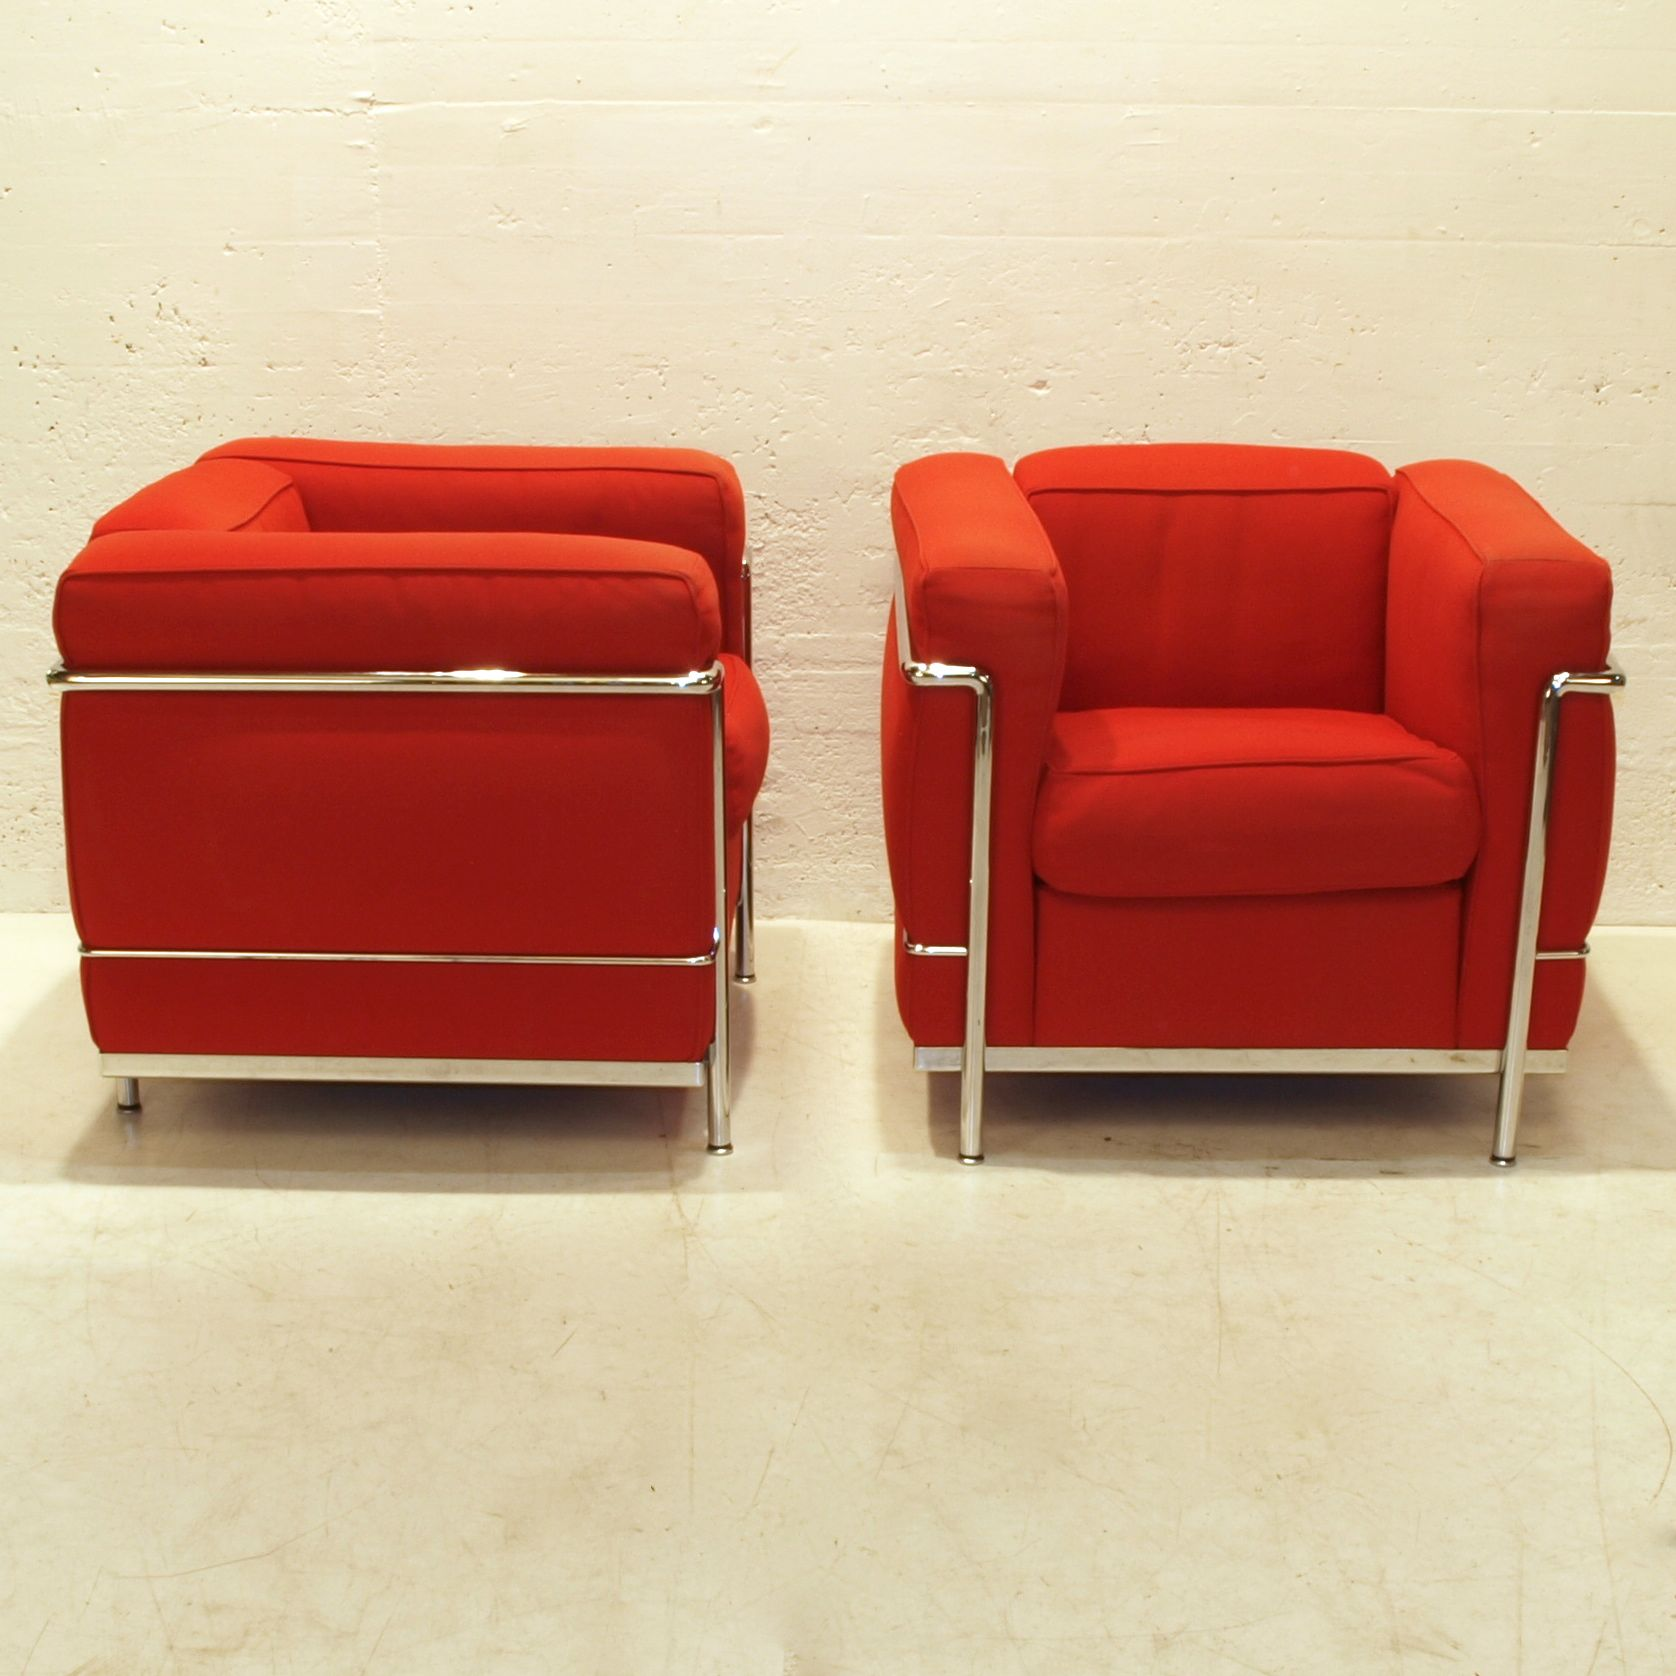 Lounge Sessel 2er Set Lc2 Corbusier Sessel 2er Set Möbel Zürich Vintagemöbel